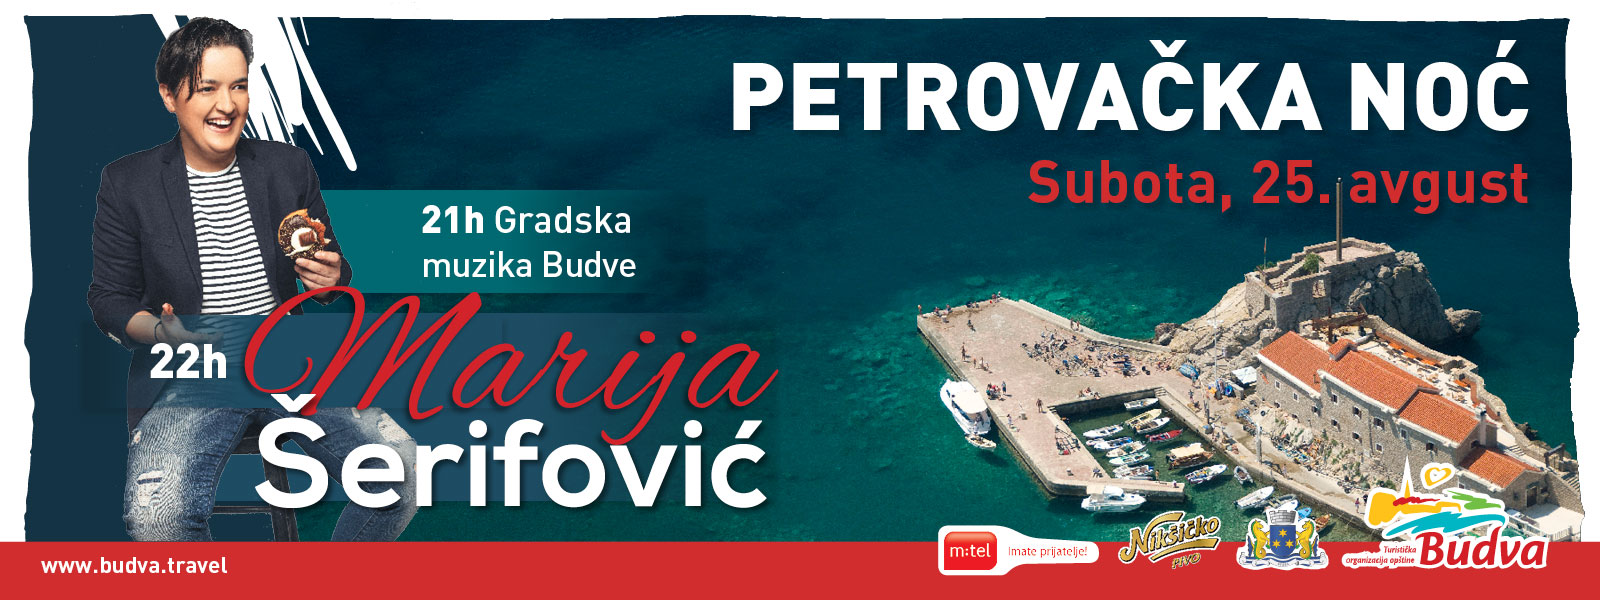 budva-food budva-events budva-apartments budva-sea adriatic-sea